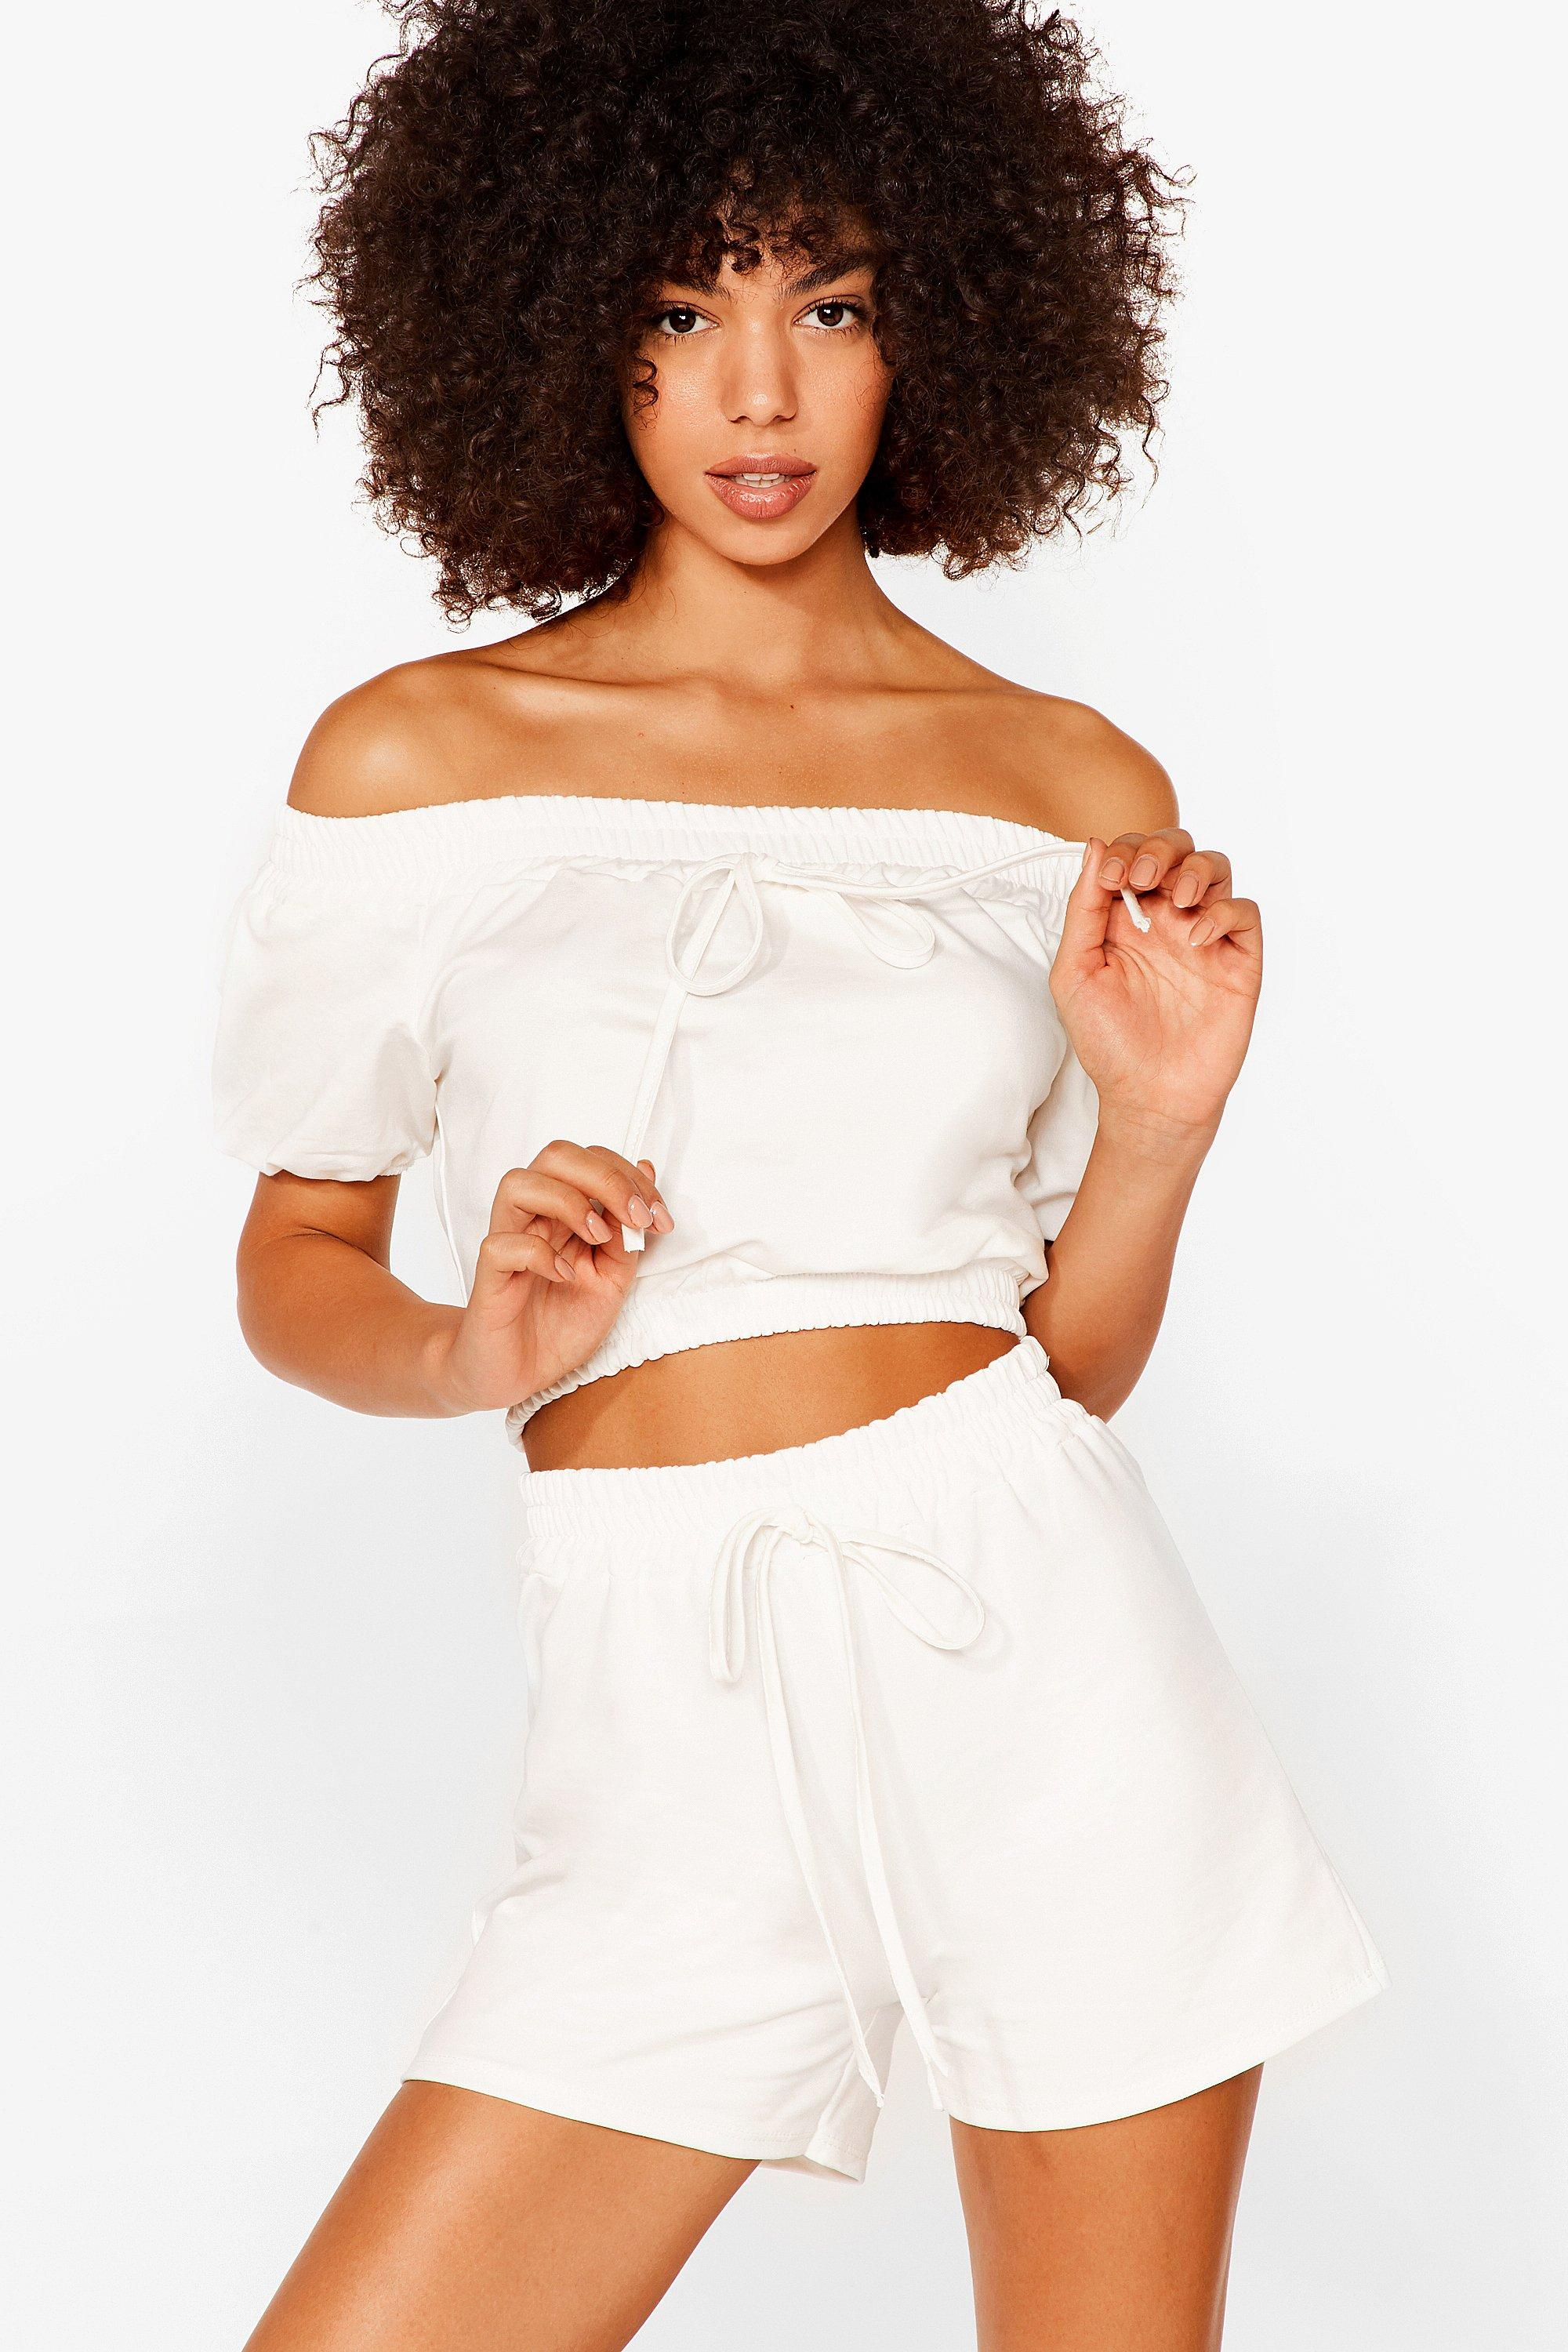 Image of Womens Day Off-the-Shoulder Crop Top and Shorts Set - White